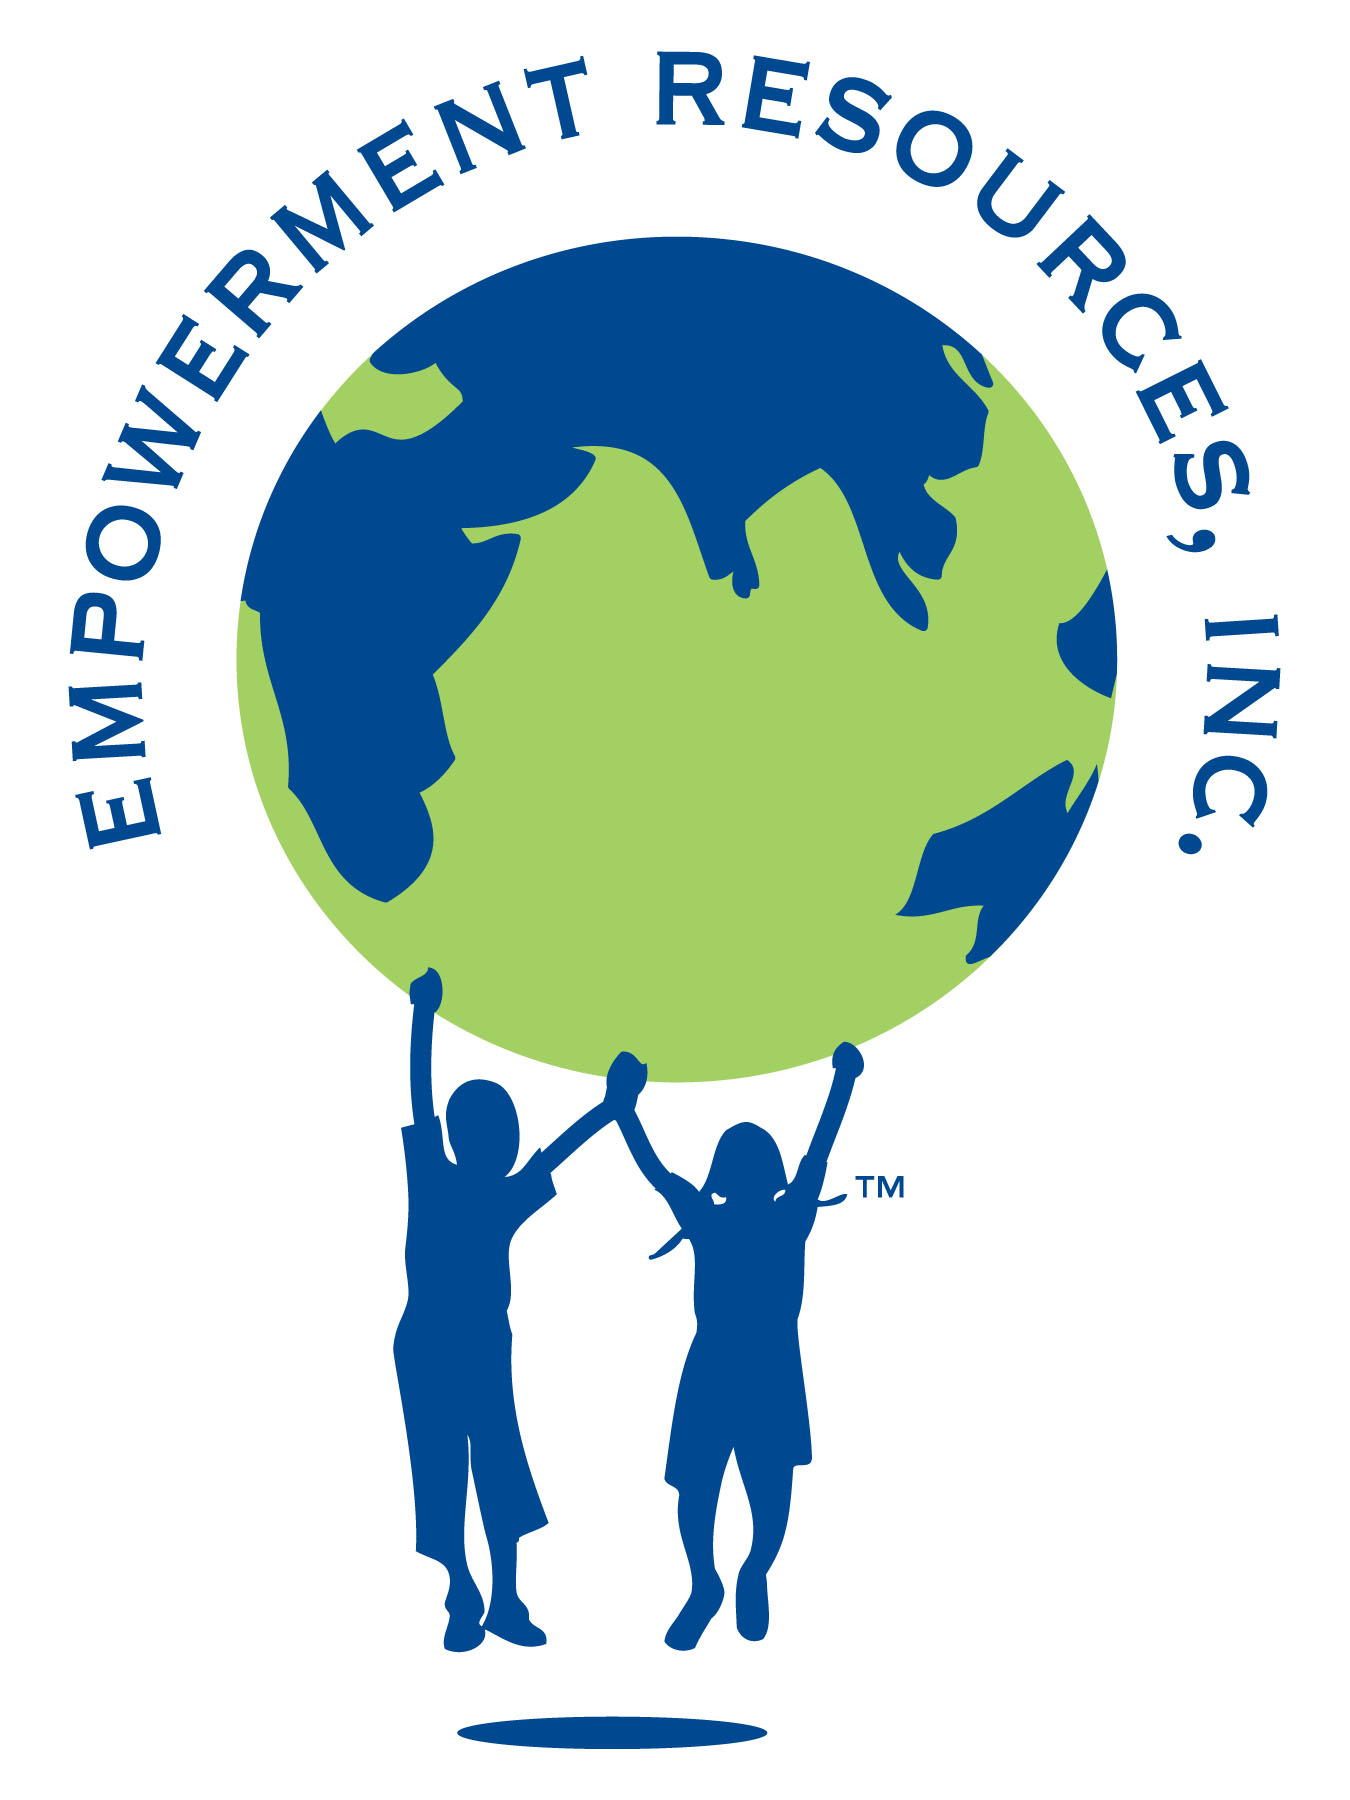 Empowerment Resources, Inc. - Founded in 2002, Empowerment Resources, Inc. (ERI) is a 501(c)(3) grassroots non-profit organization in Jacksonville, Florida that serves at-risk youth and families by providing programs and services that positively impact the whole family.